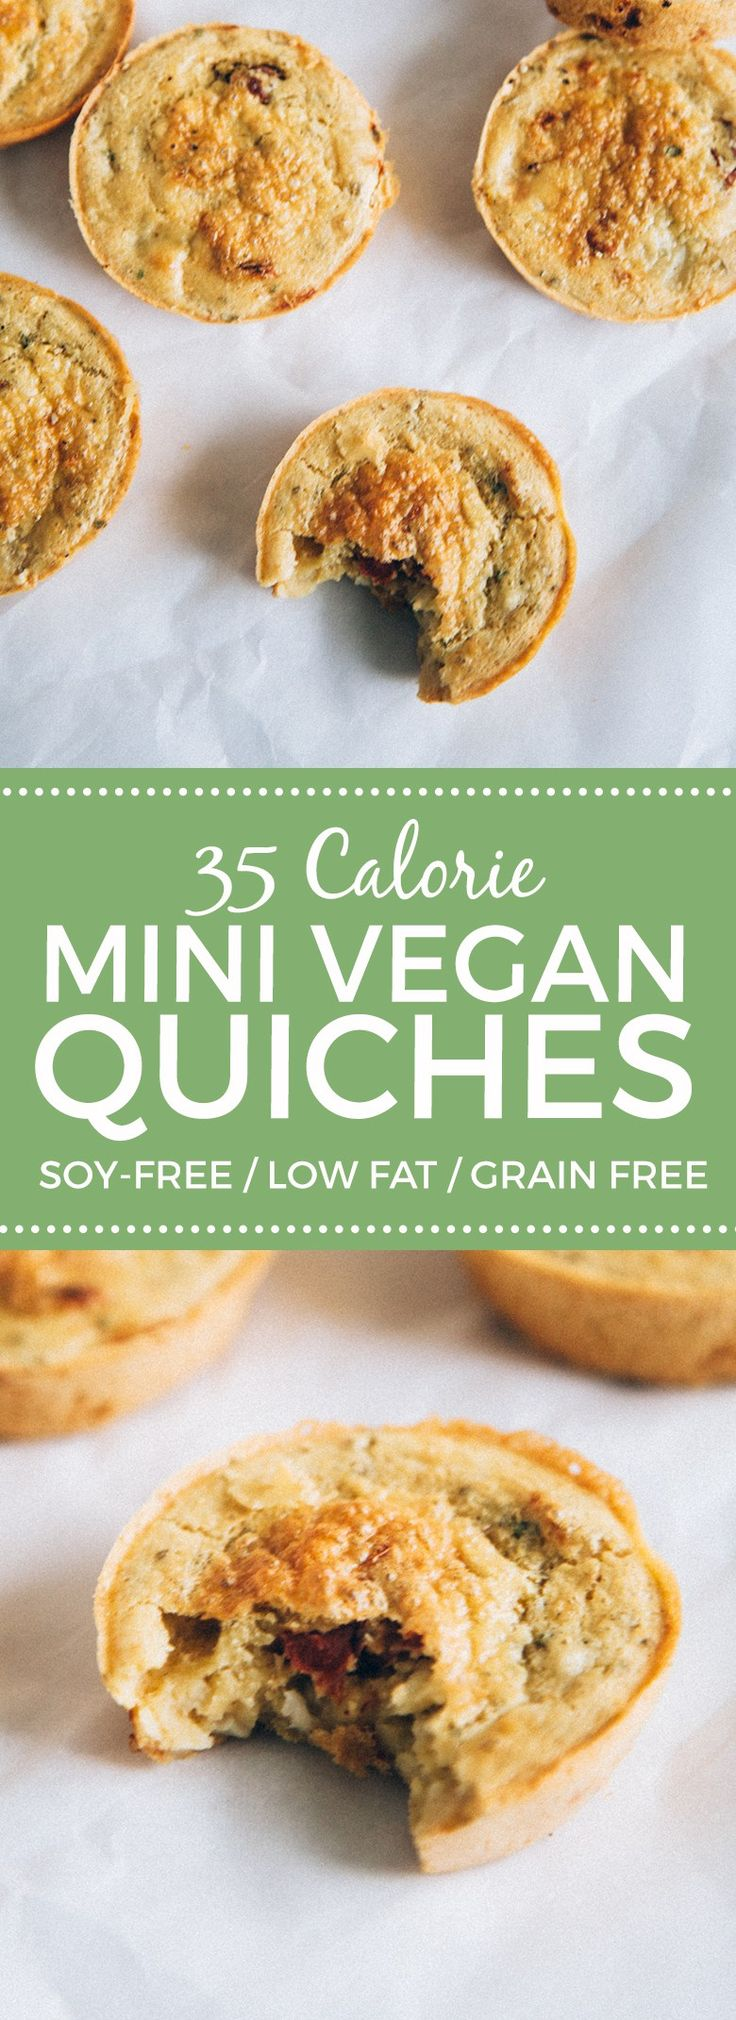 35-Calorie Mini Vegan Quiches #glutenfree #grainfree #soyfree